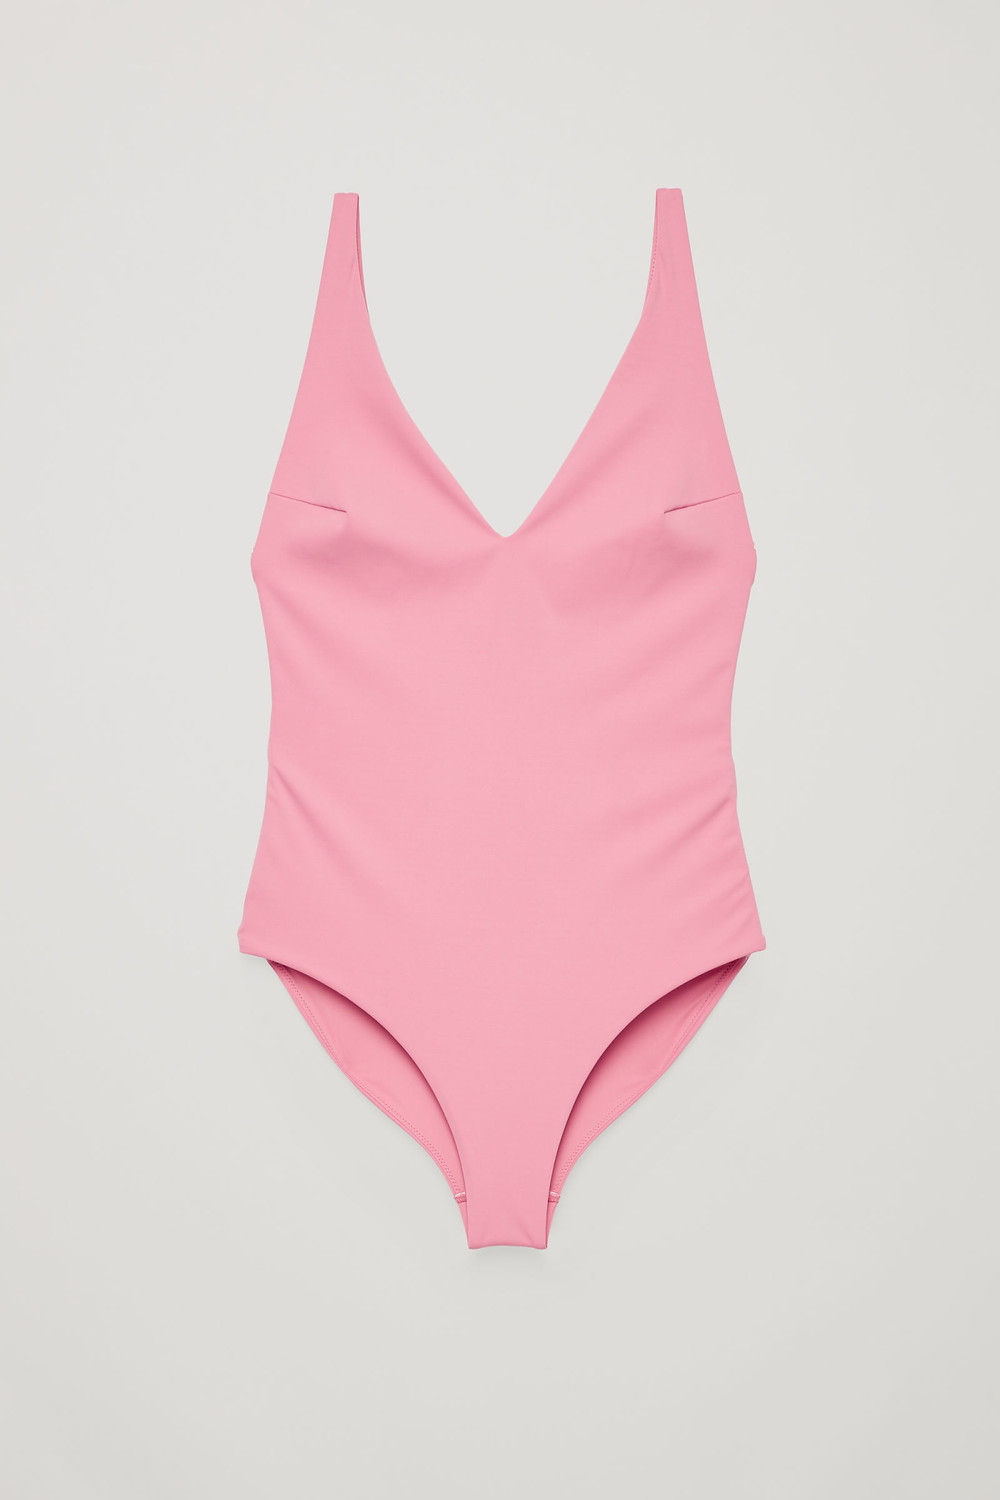 COS V-Neck Swimsuit $49